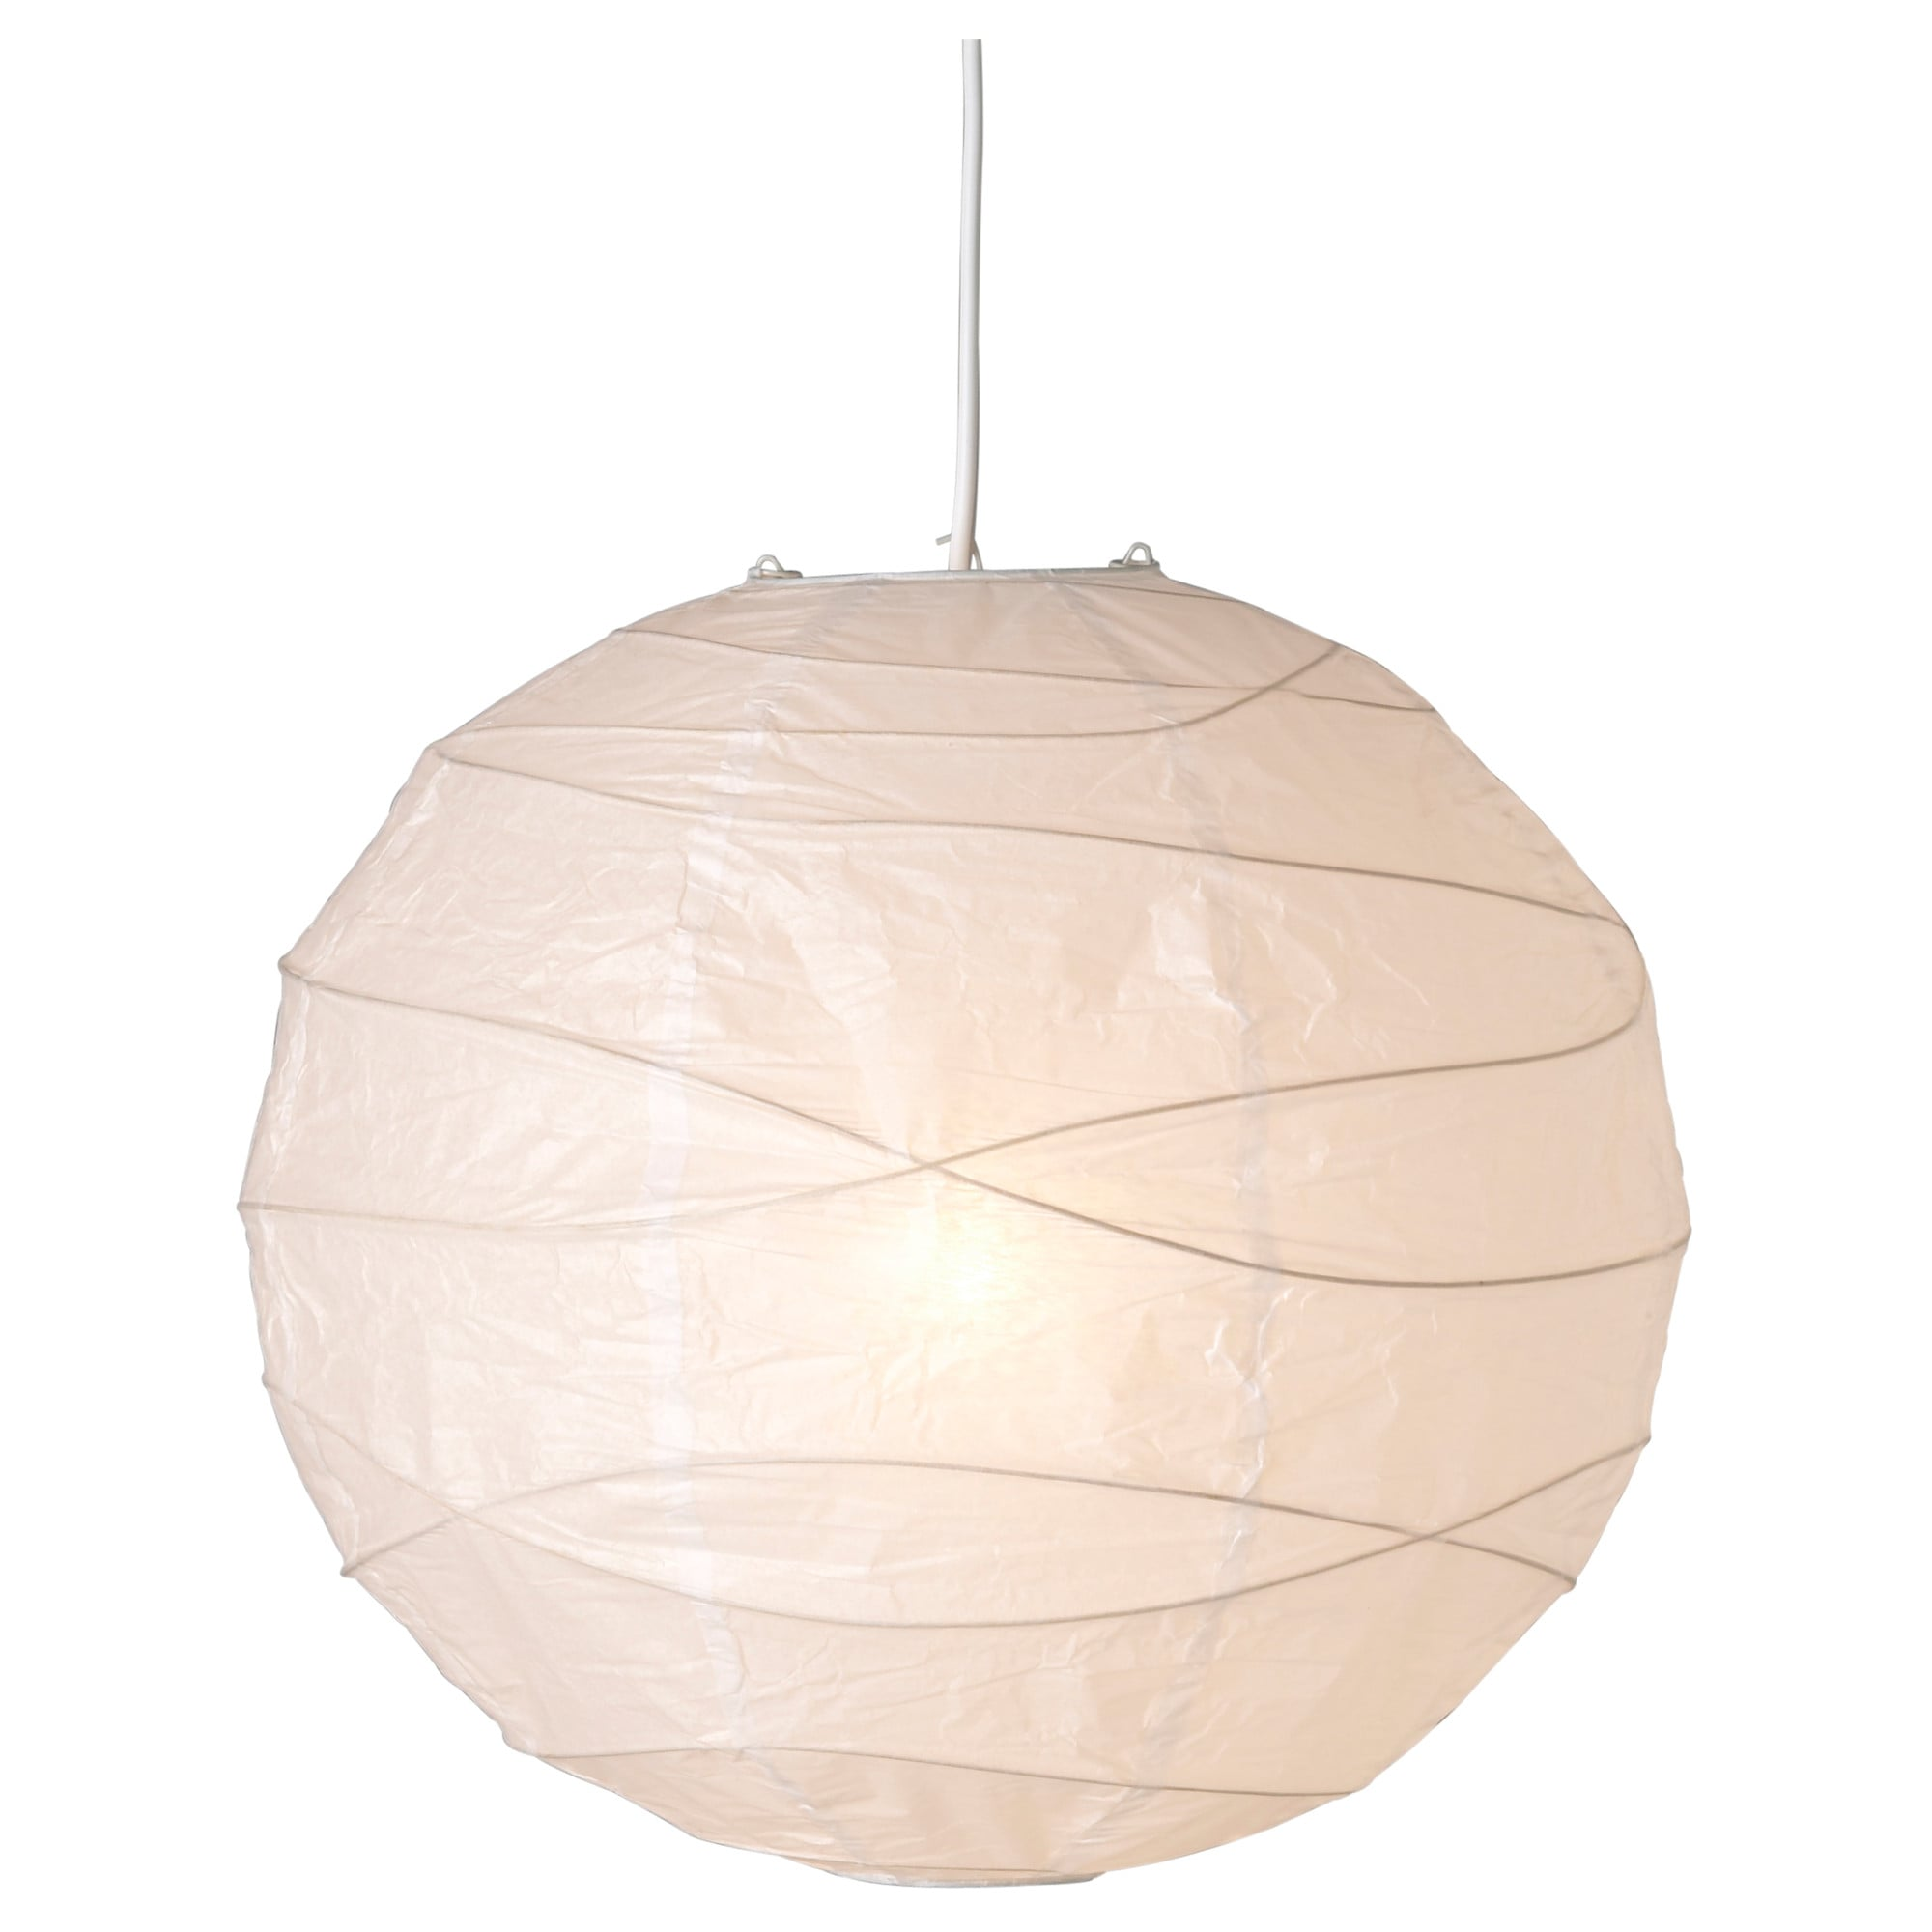 REGOLIT Pendant Lamp Shade IKEA - Ikea bedroom light fixtures